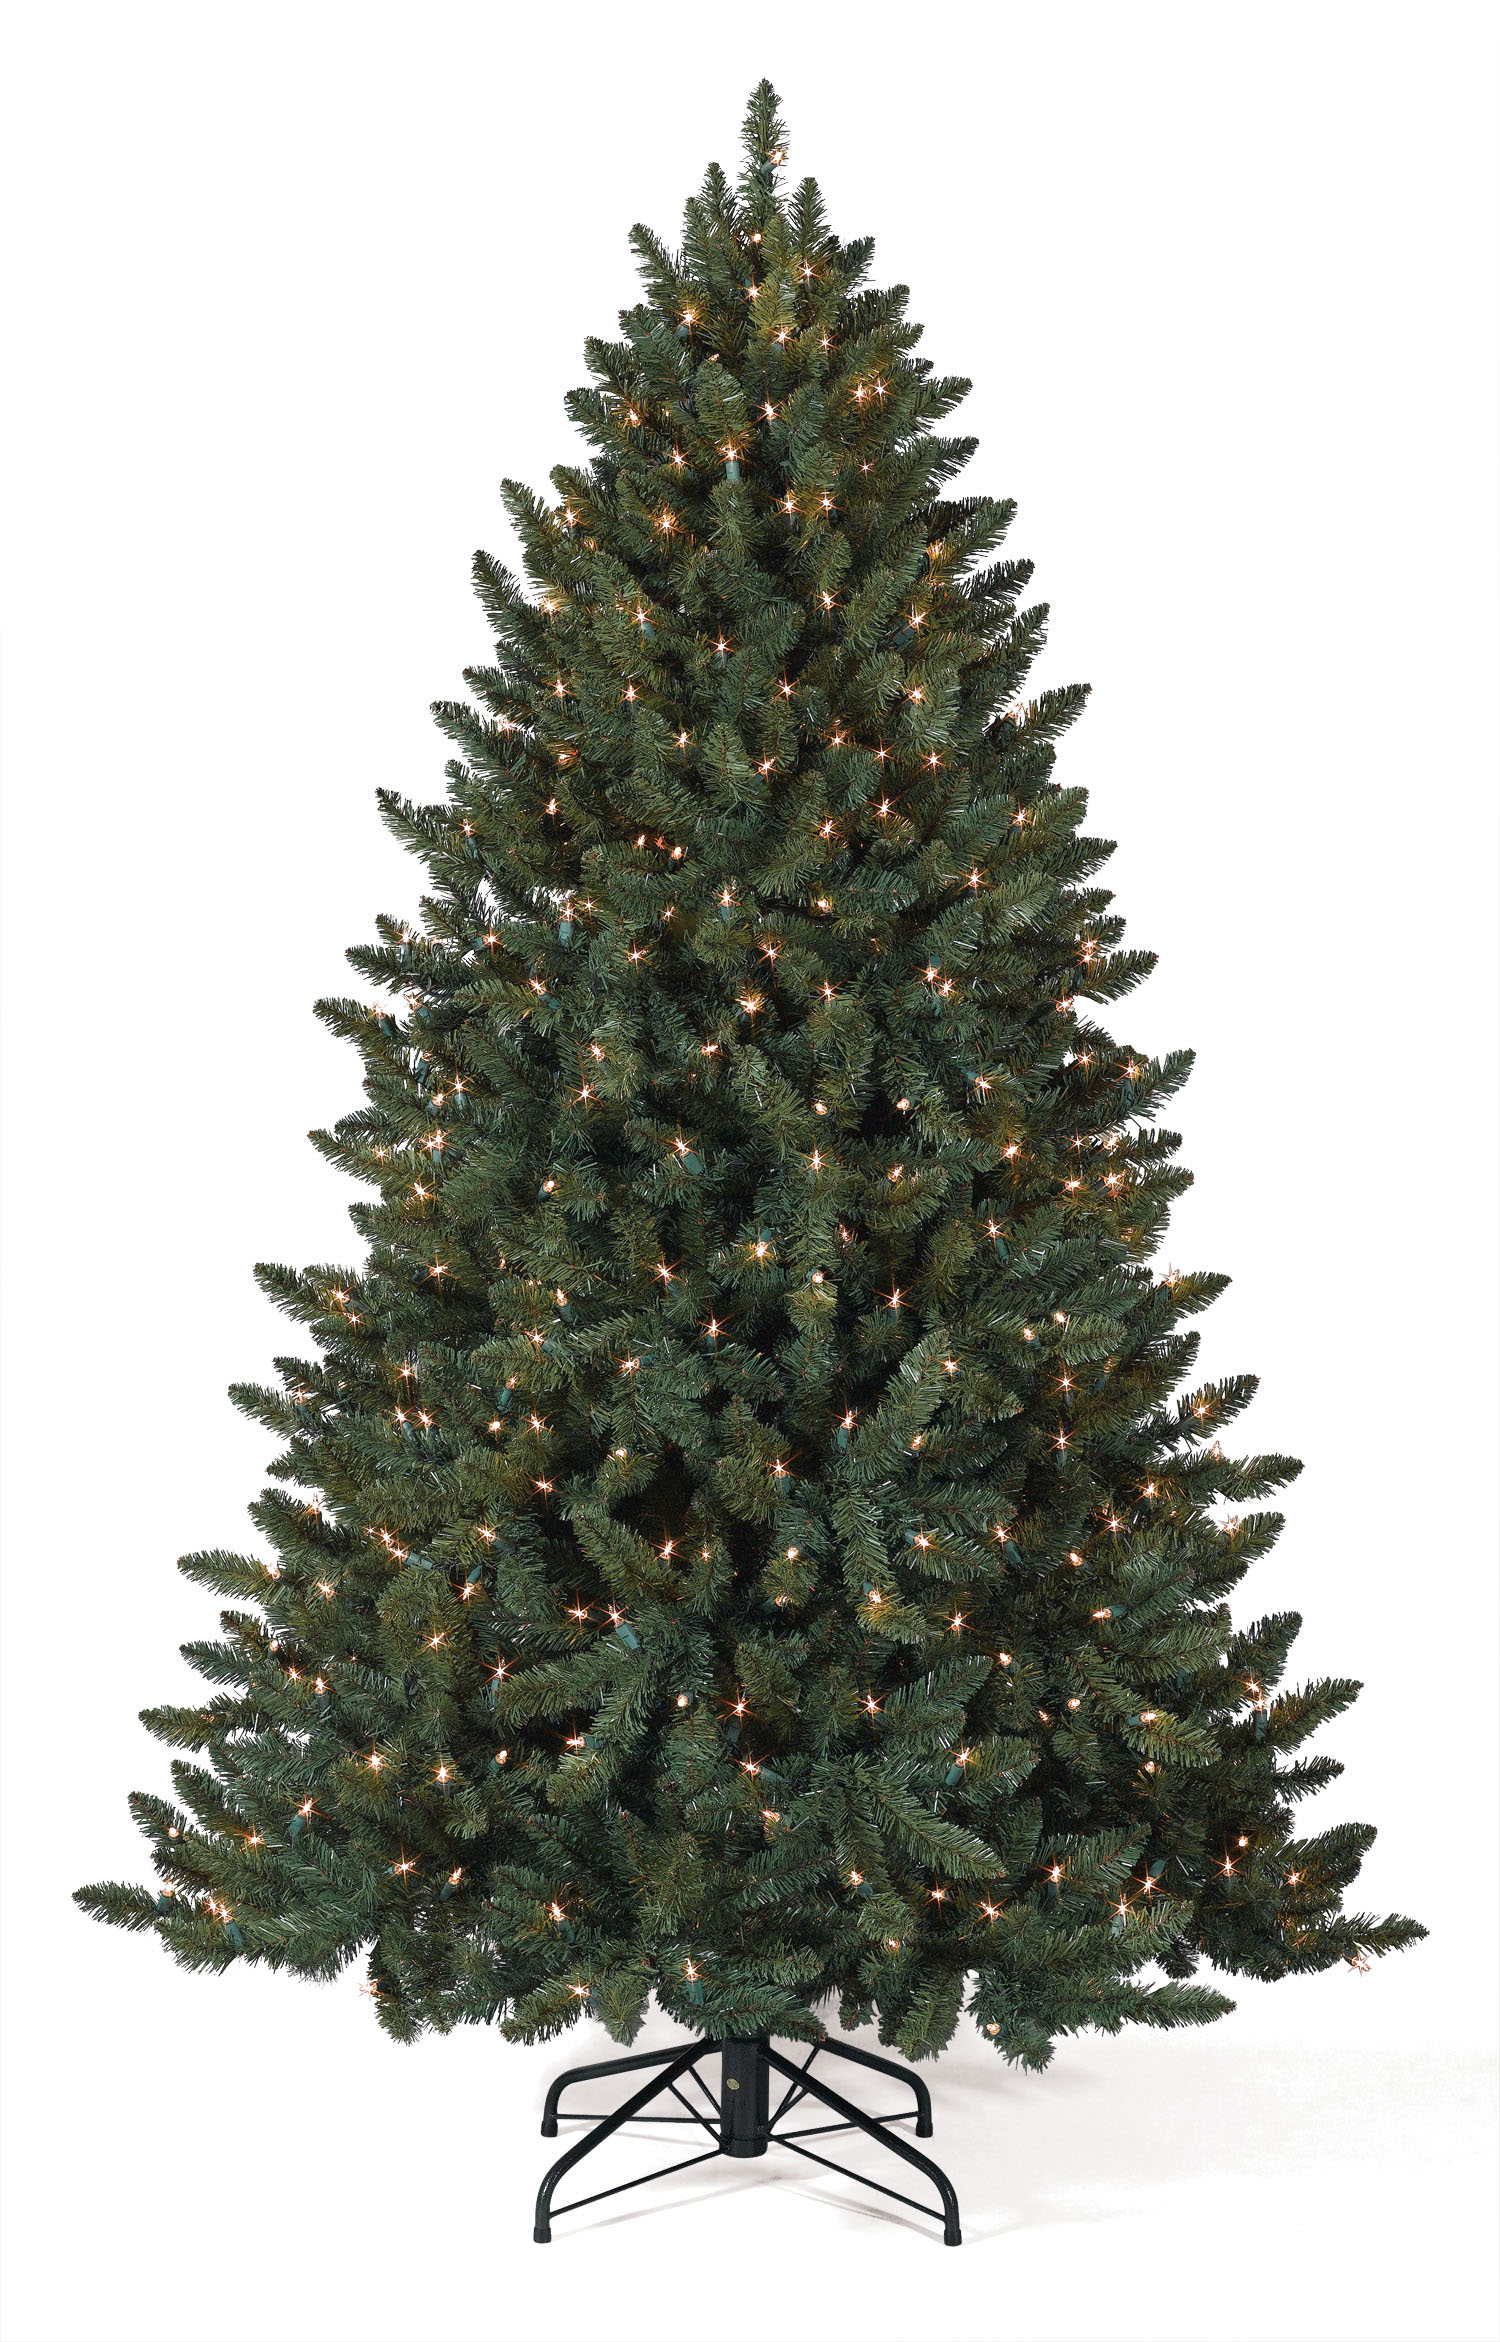 6' Balsam Spruce Multi Lights Christmas Tree | Christmas Tree Market